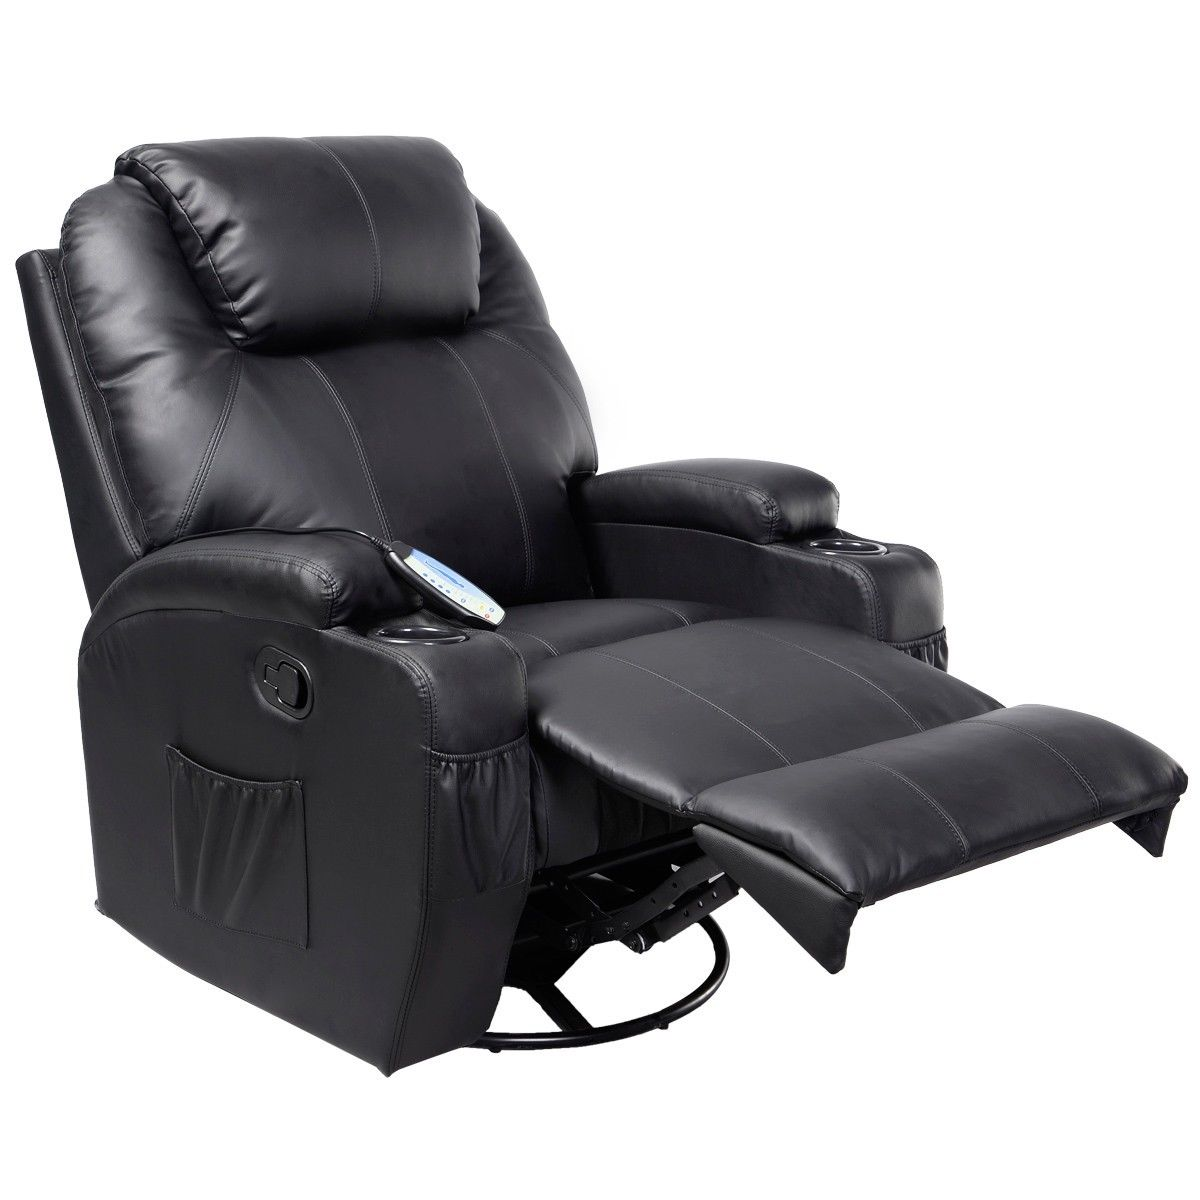 Giantex electric massage chair leather recliner sofa chair for Modern leather lounge chairs